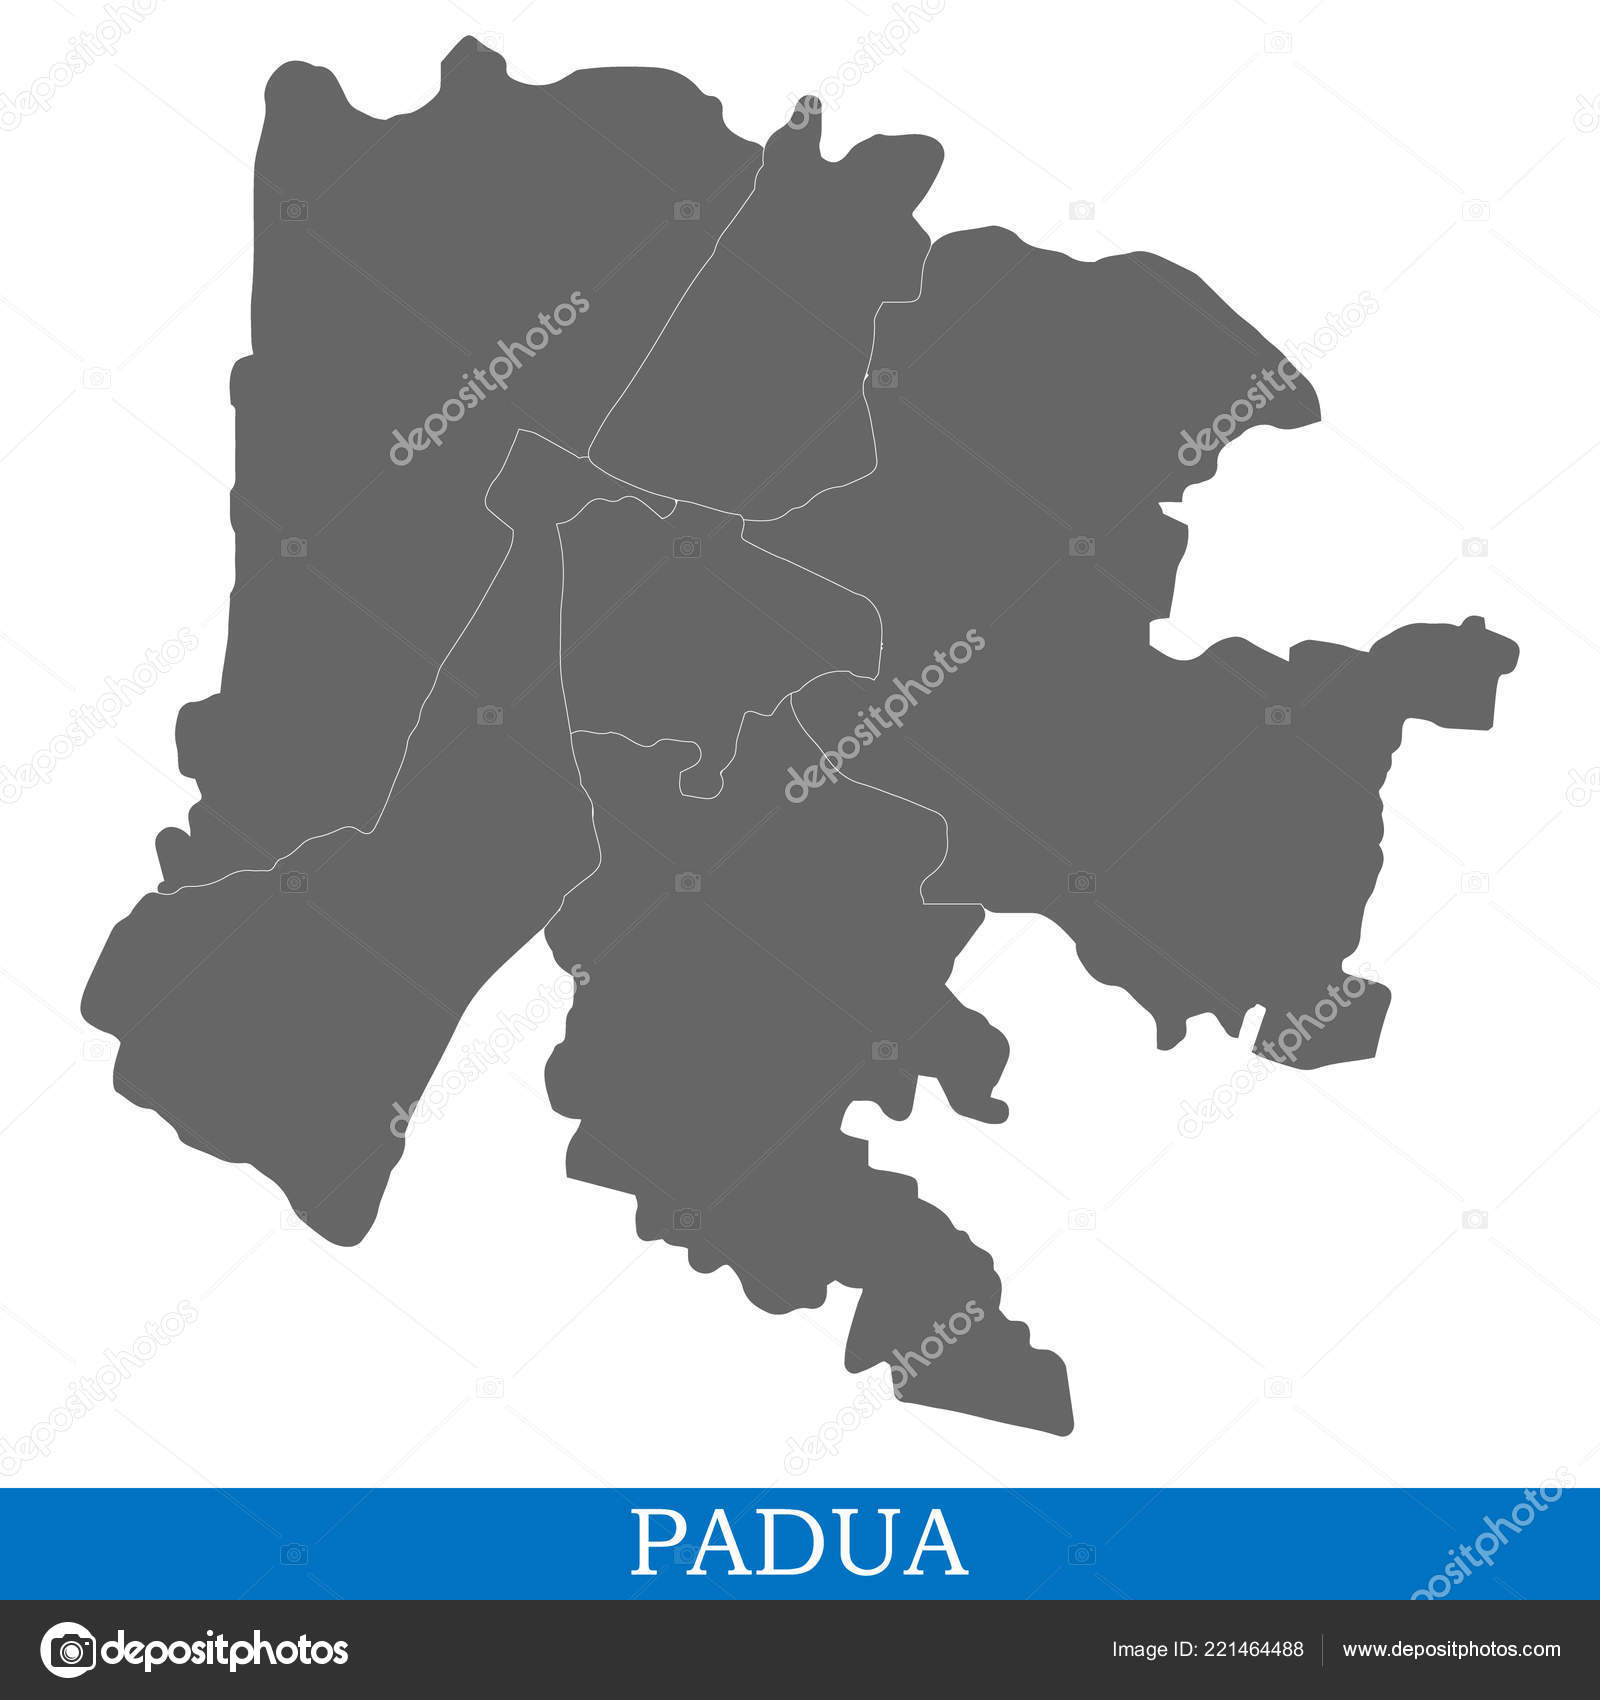 High Quality Map Padua City Italy Borders Districts Stock Vector